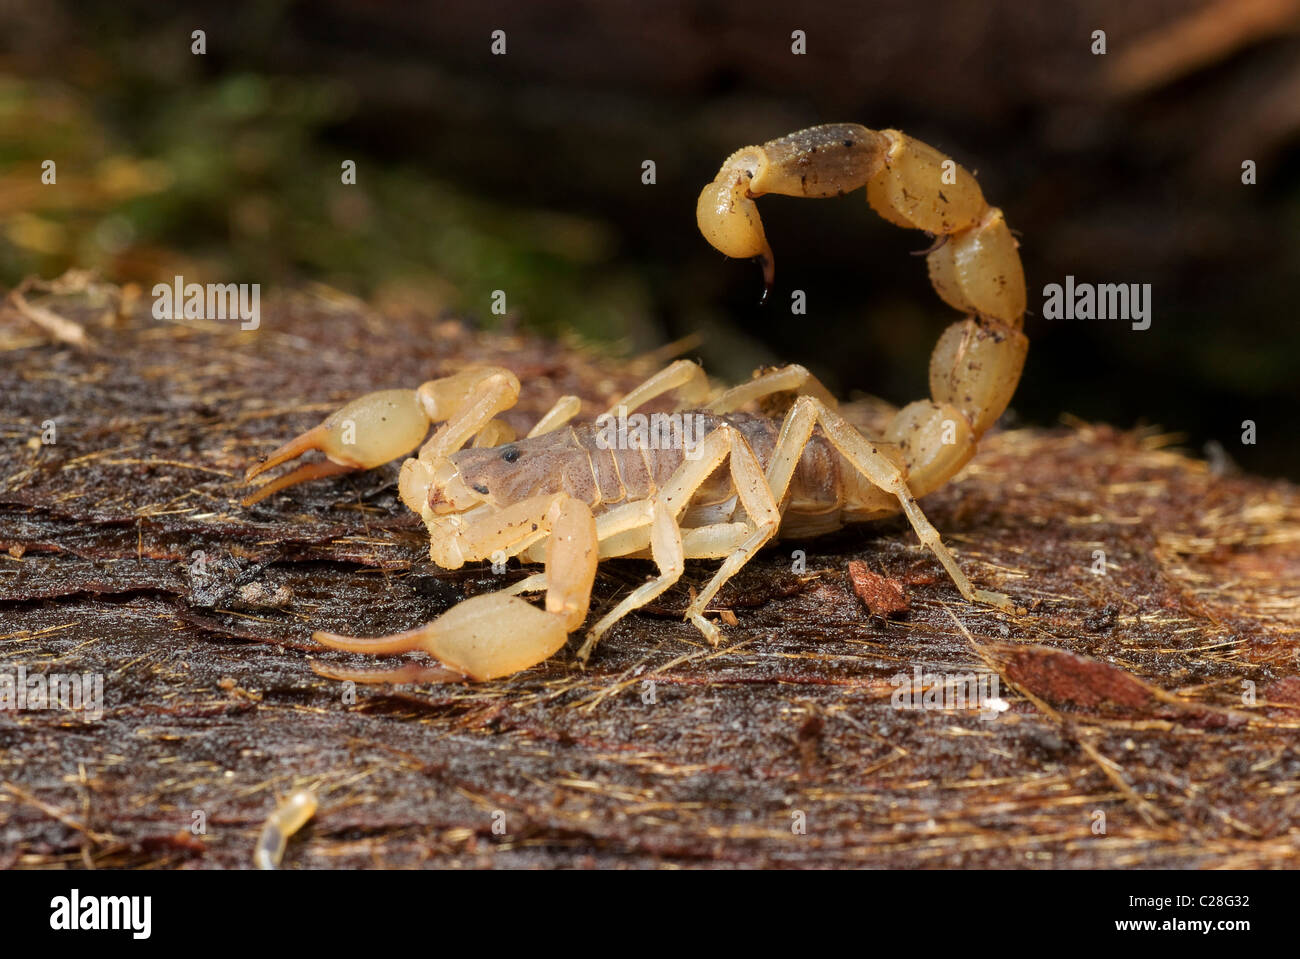 Chinese Swimming Scorpion (Lychas mucronatus) on wood. - Stock Image